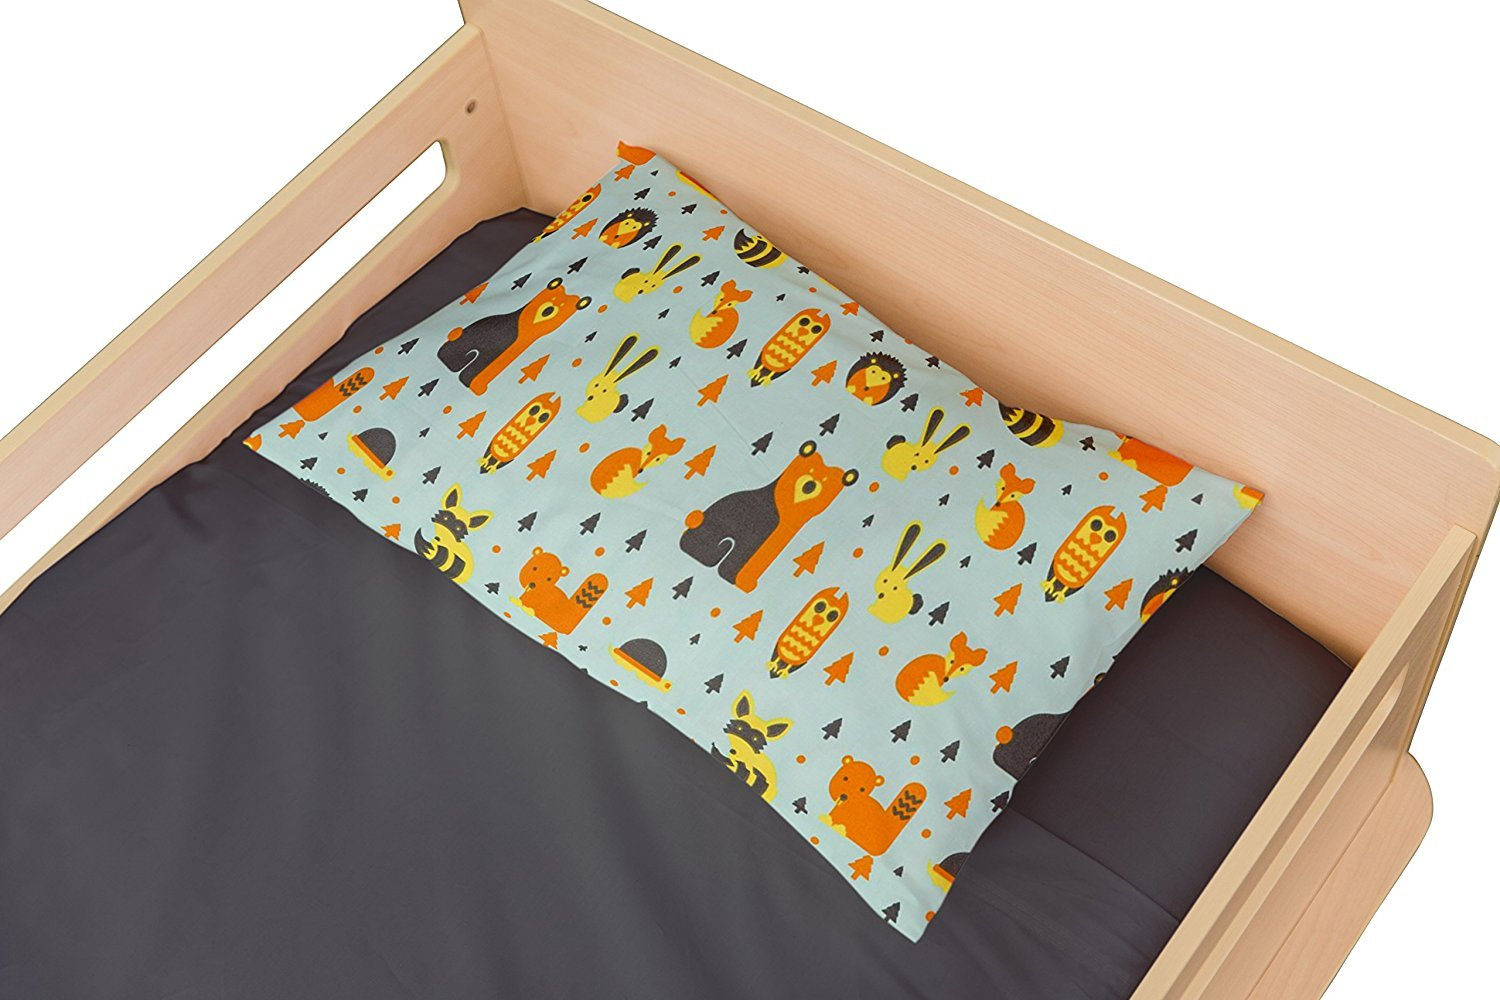 Toddler Pillowcase Woodland -Super Soft High Quality Microfiber That Is as Soft as 1500 Thread Count Cotton (Pillow 13x18) Where The Polka Dots Roam